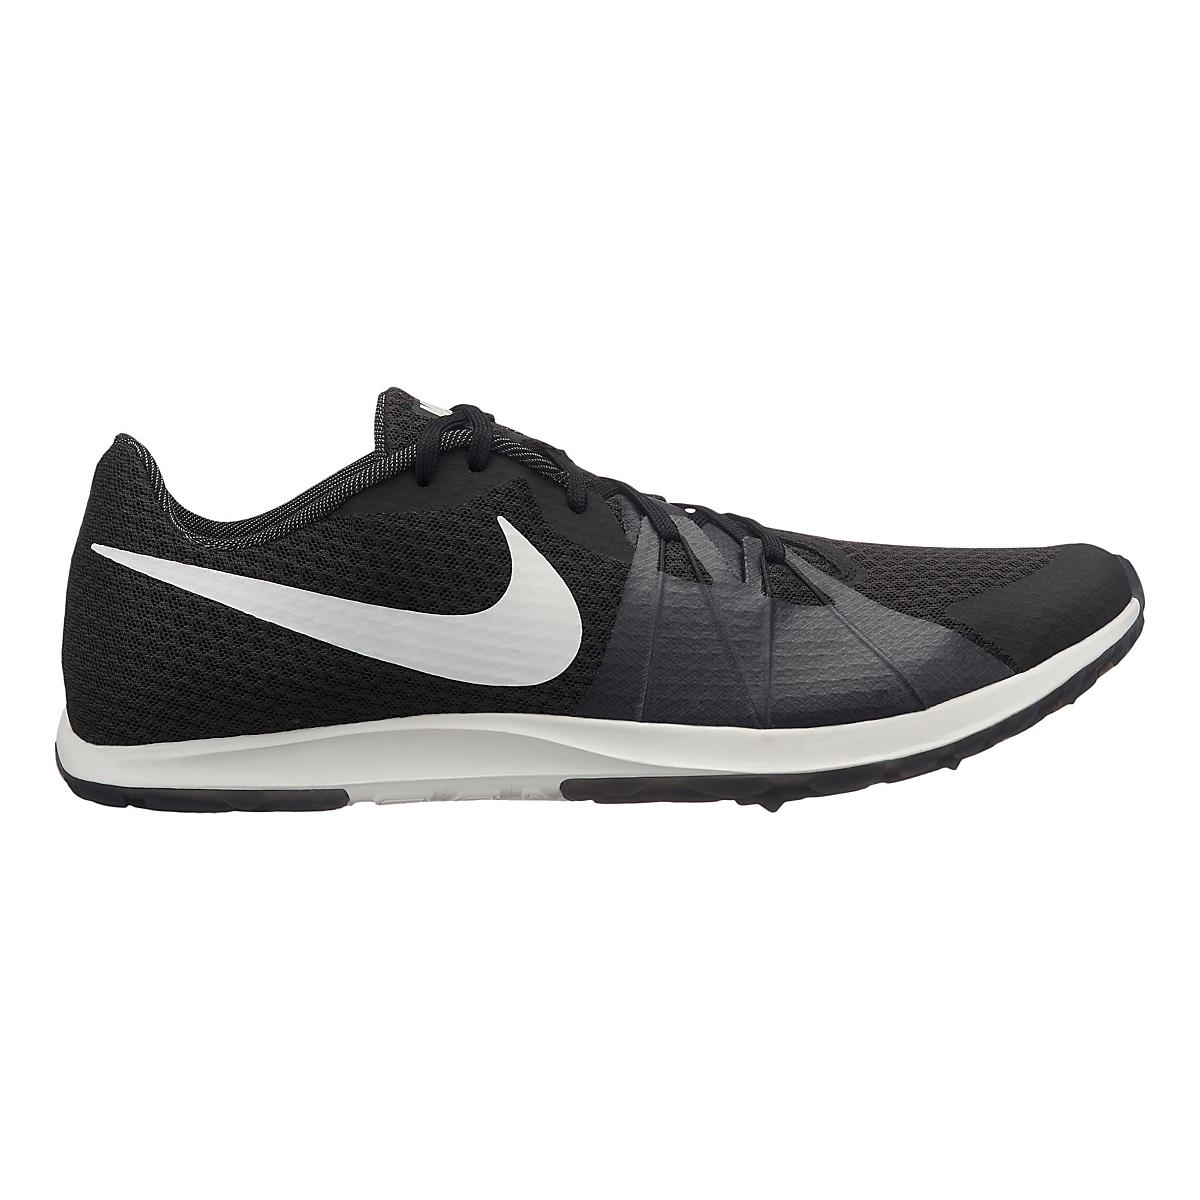 new products 3dfe9 a8870 Nike Zoom Rival Waffle Cross Country Shoe at Road Runner Spo